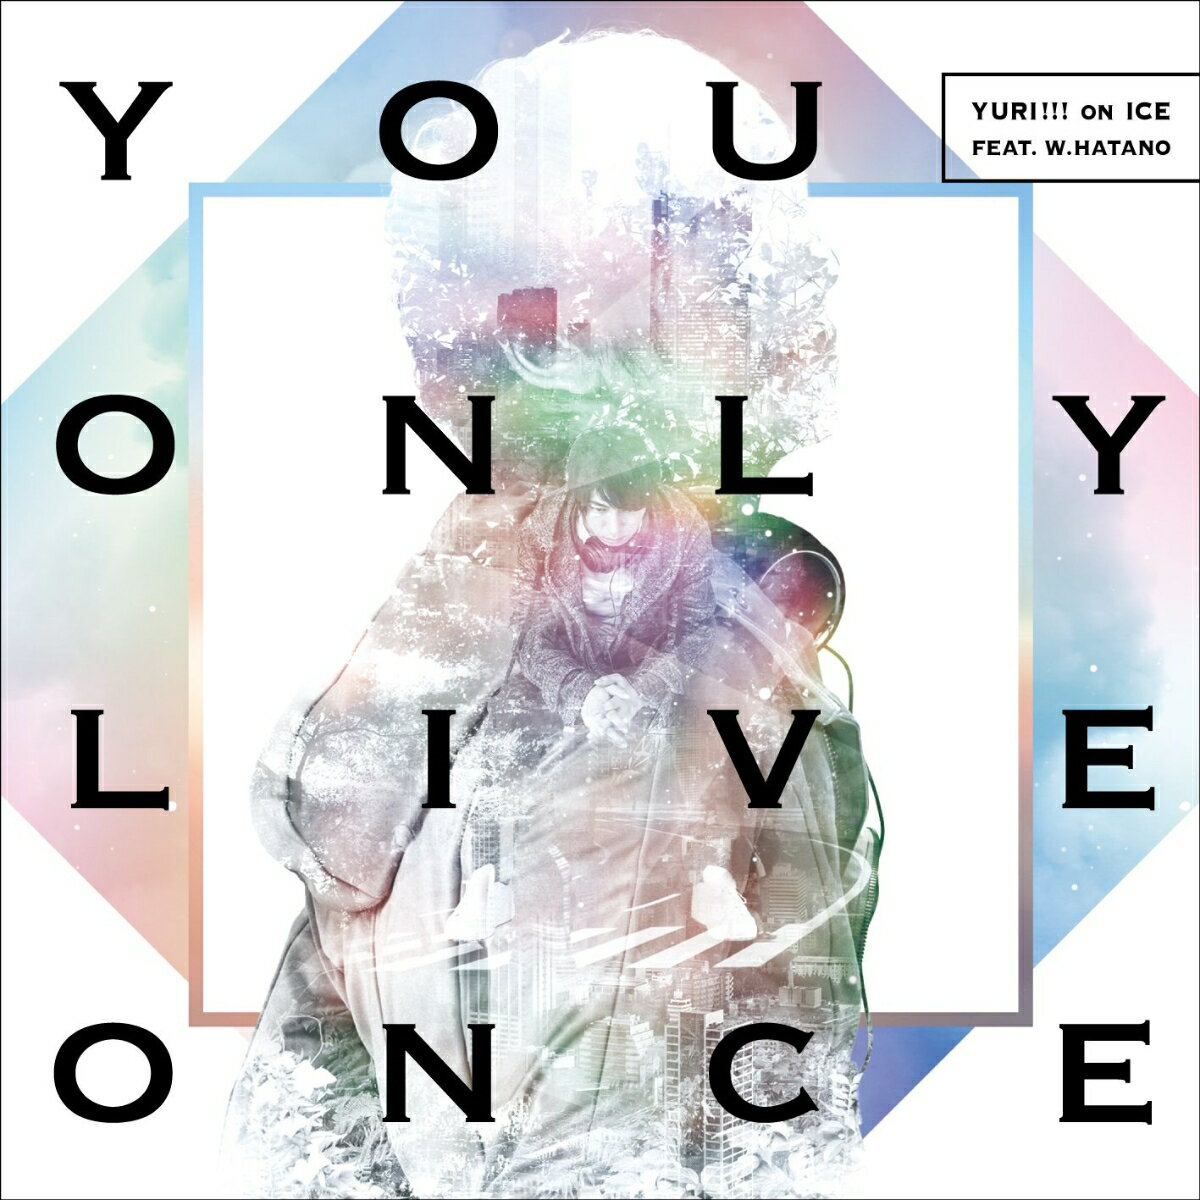 アニメソング, その他 You Only Live Once YURI!!! on ICE feat.w.hatano